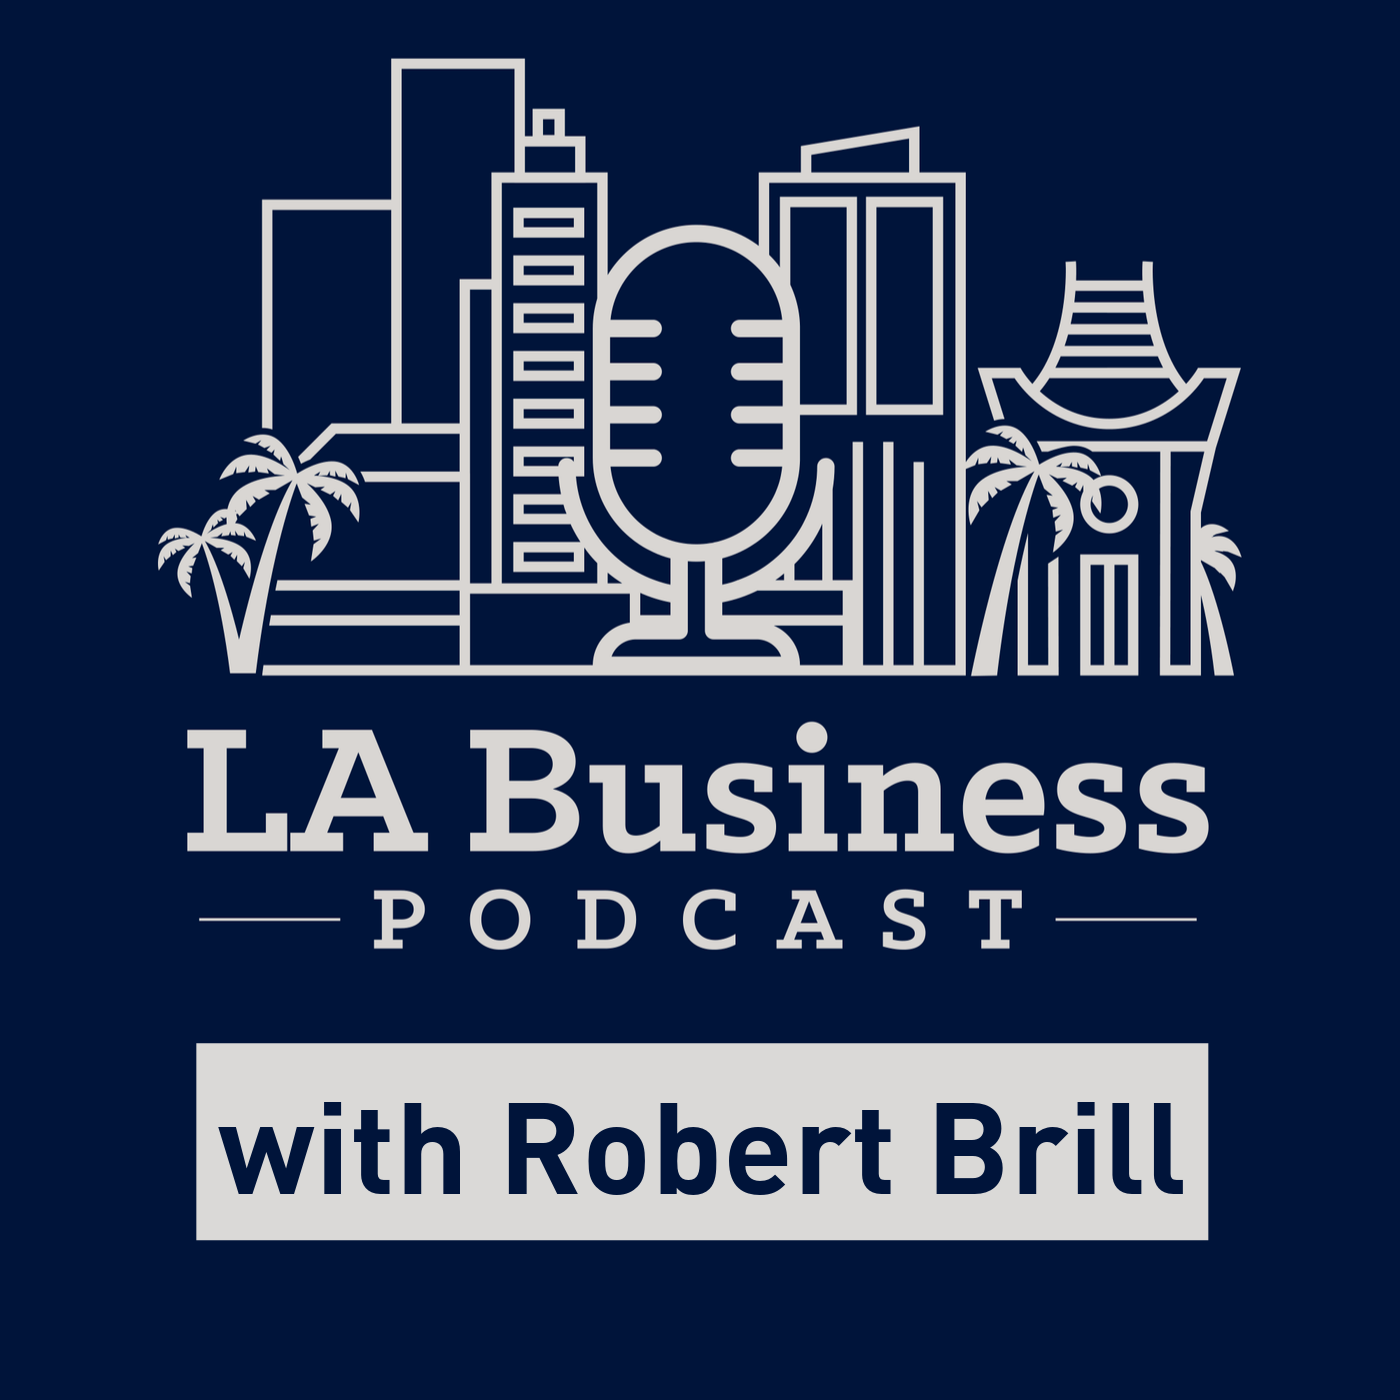 LA Business Podcast with Robert Brill show art